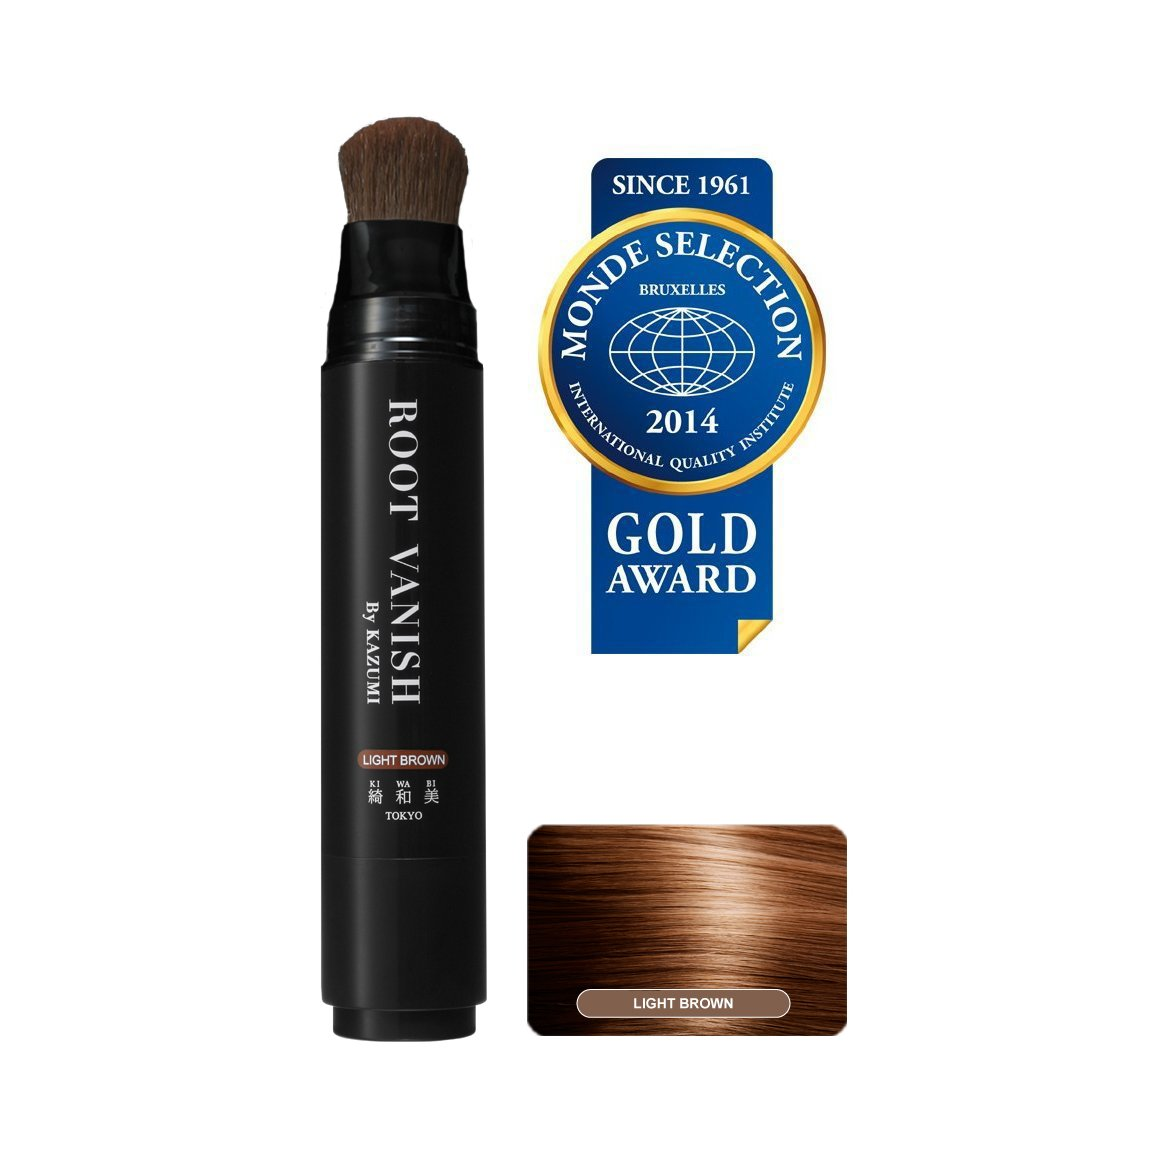 ROOT VANISH BY KAZUMI in Light Brown Instantly Camouflages Gray Roots and Hair with Natural Anti-Aging Botanicals. 100 Click Pumps (20ml / 0.7oz) Lasts 2-3 Months. Carries You Over Between Salon Color Appointments.